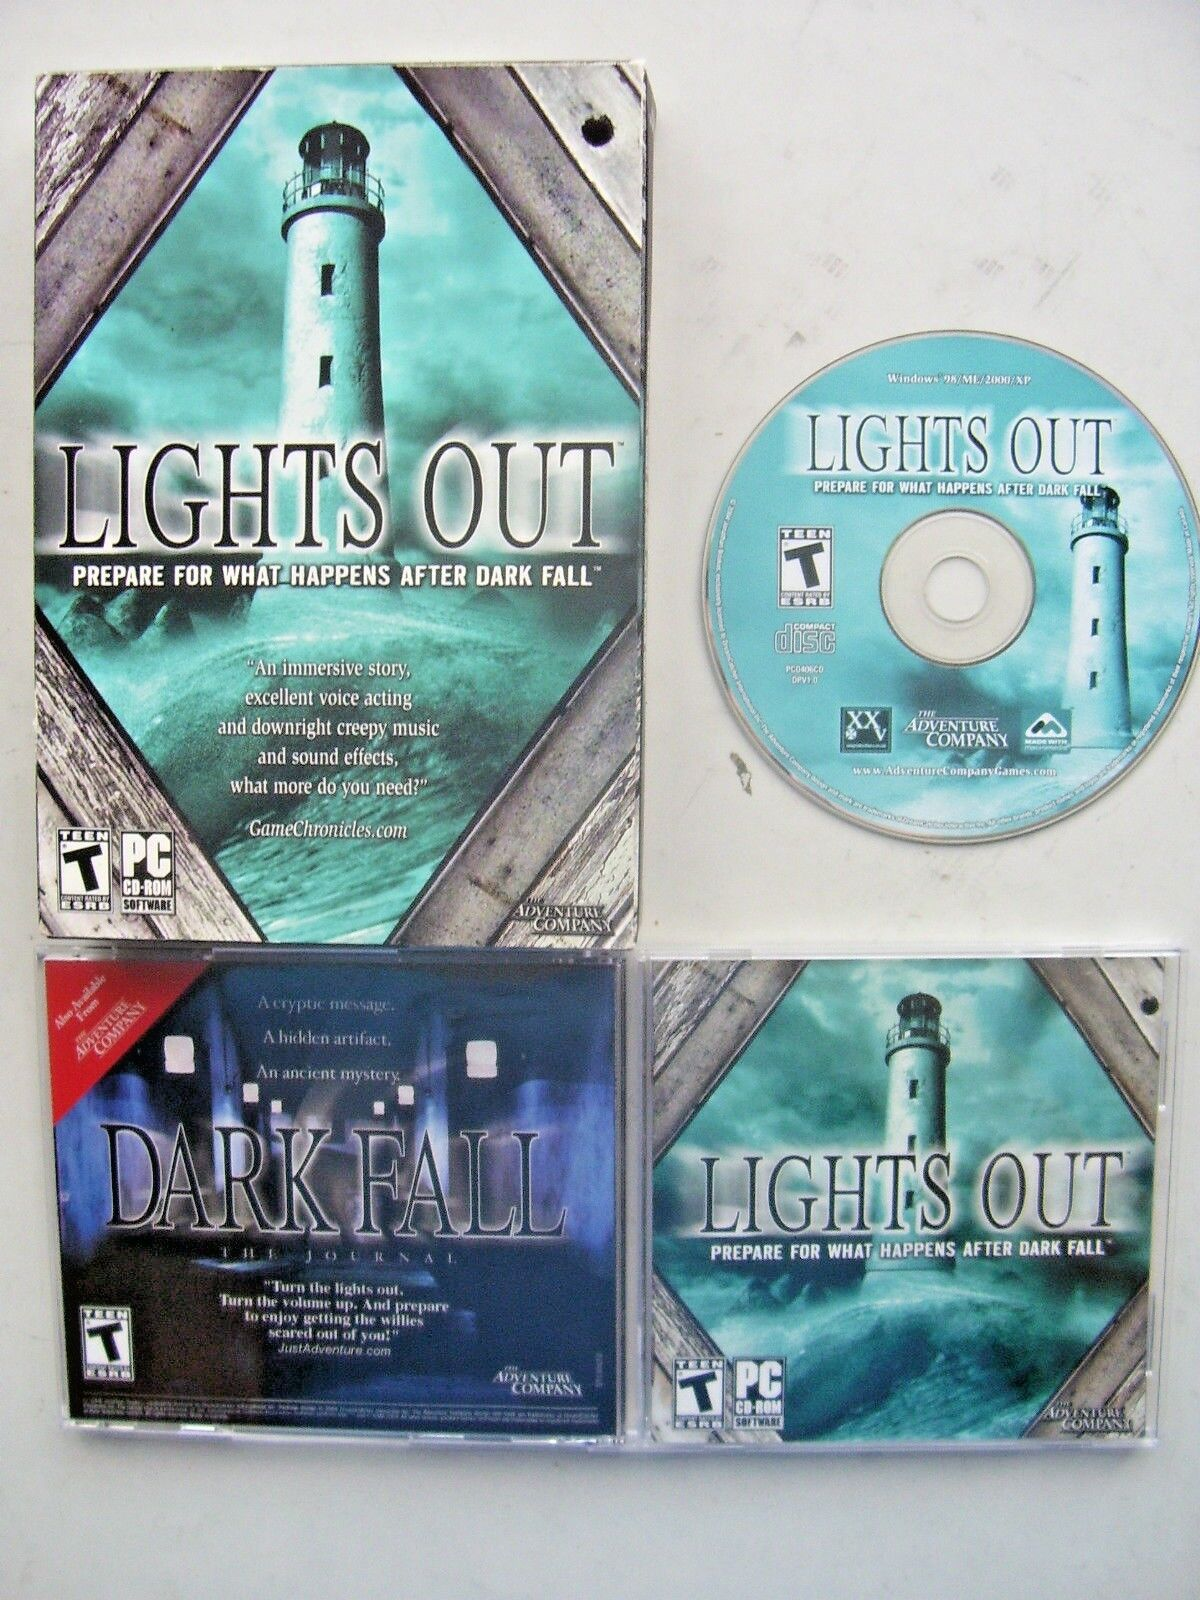 Dark Fall: Lights Out (PC: Windows, 2009) - Boxed Edition